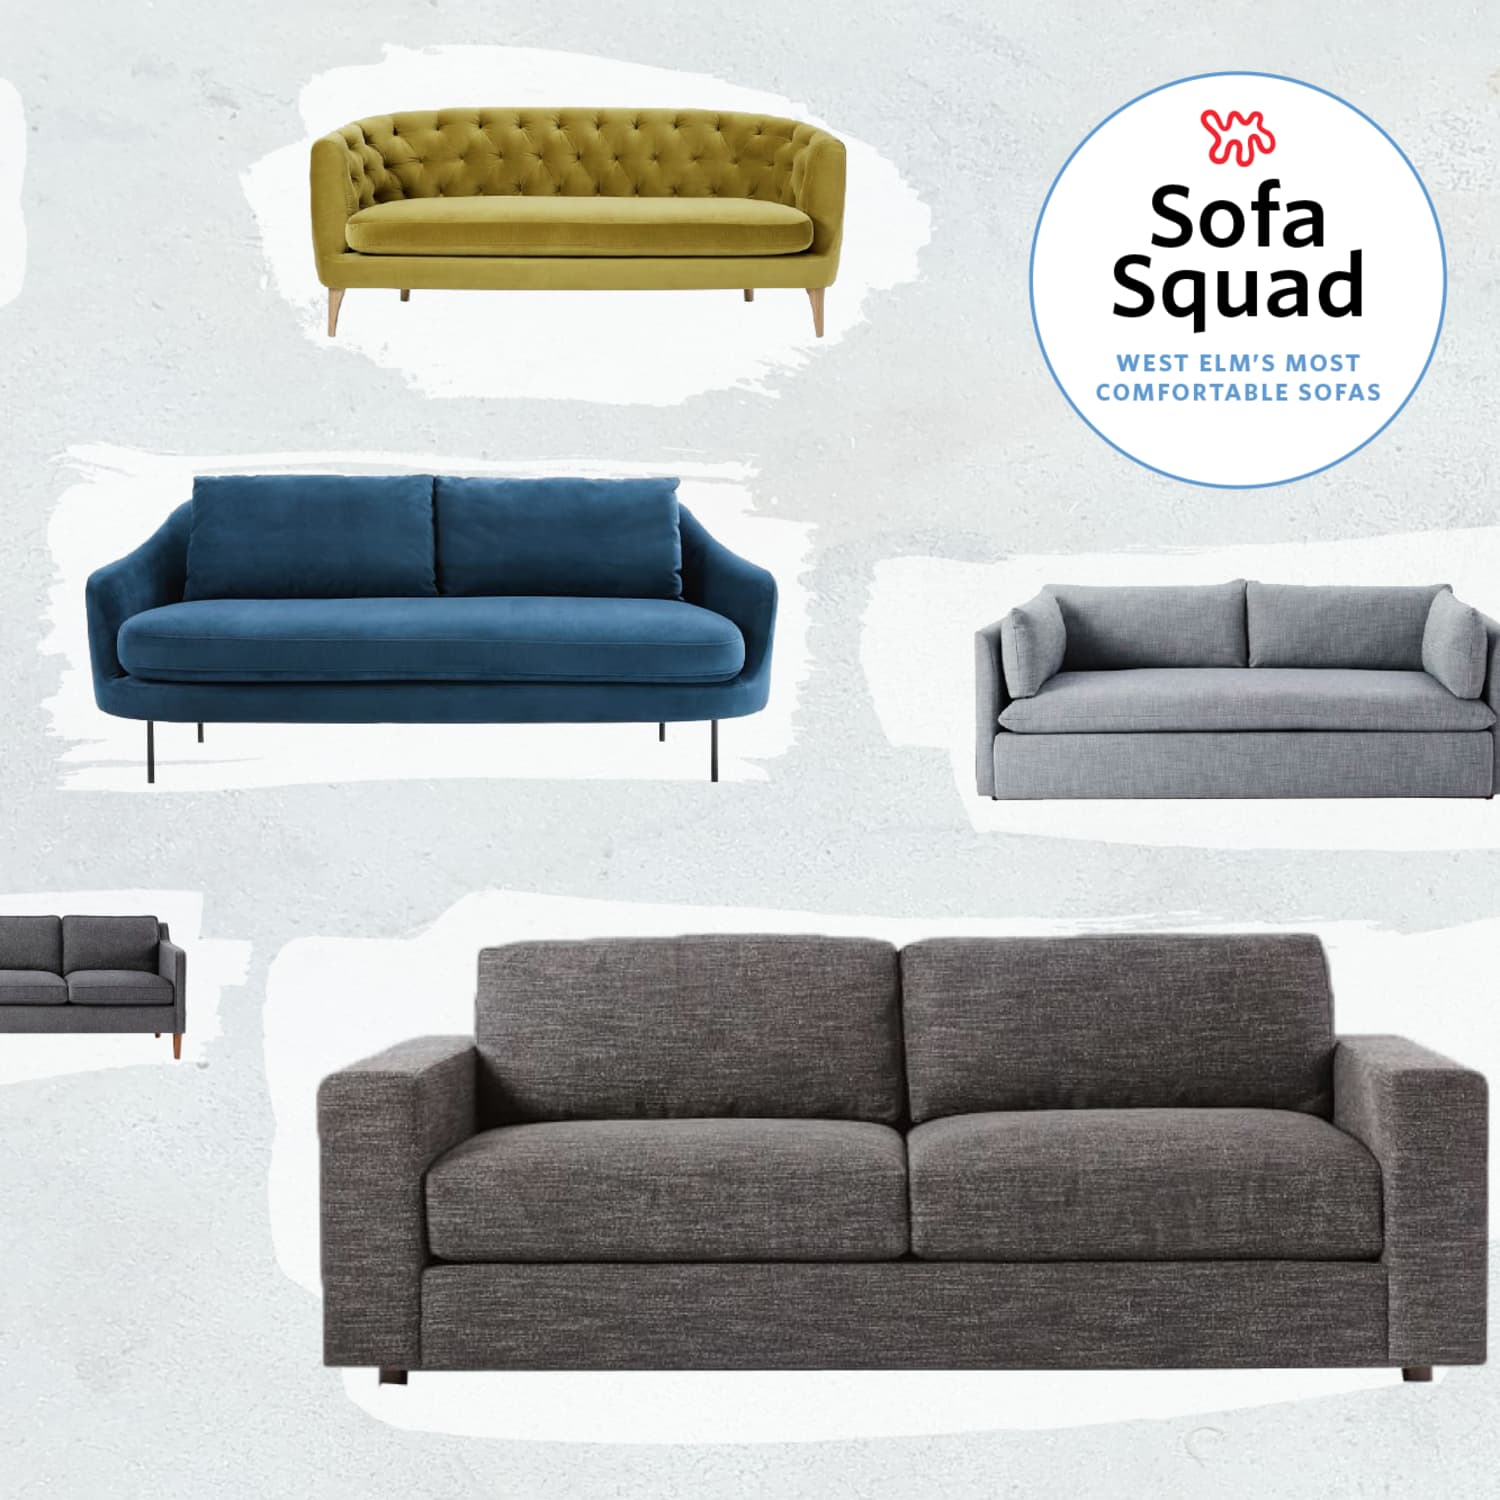 the most comfortable sofas at west elm